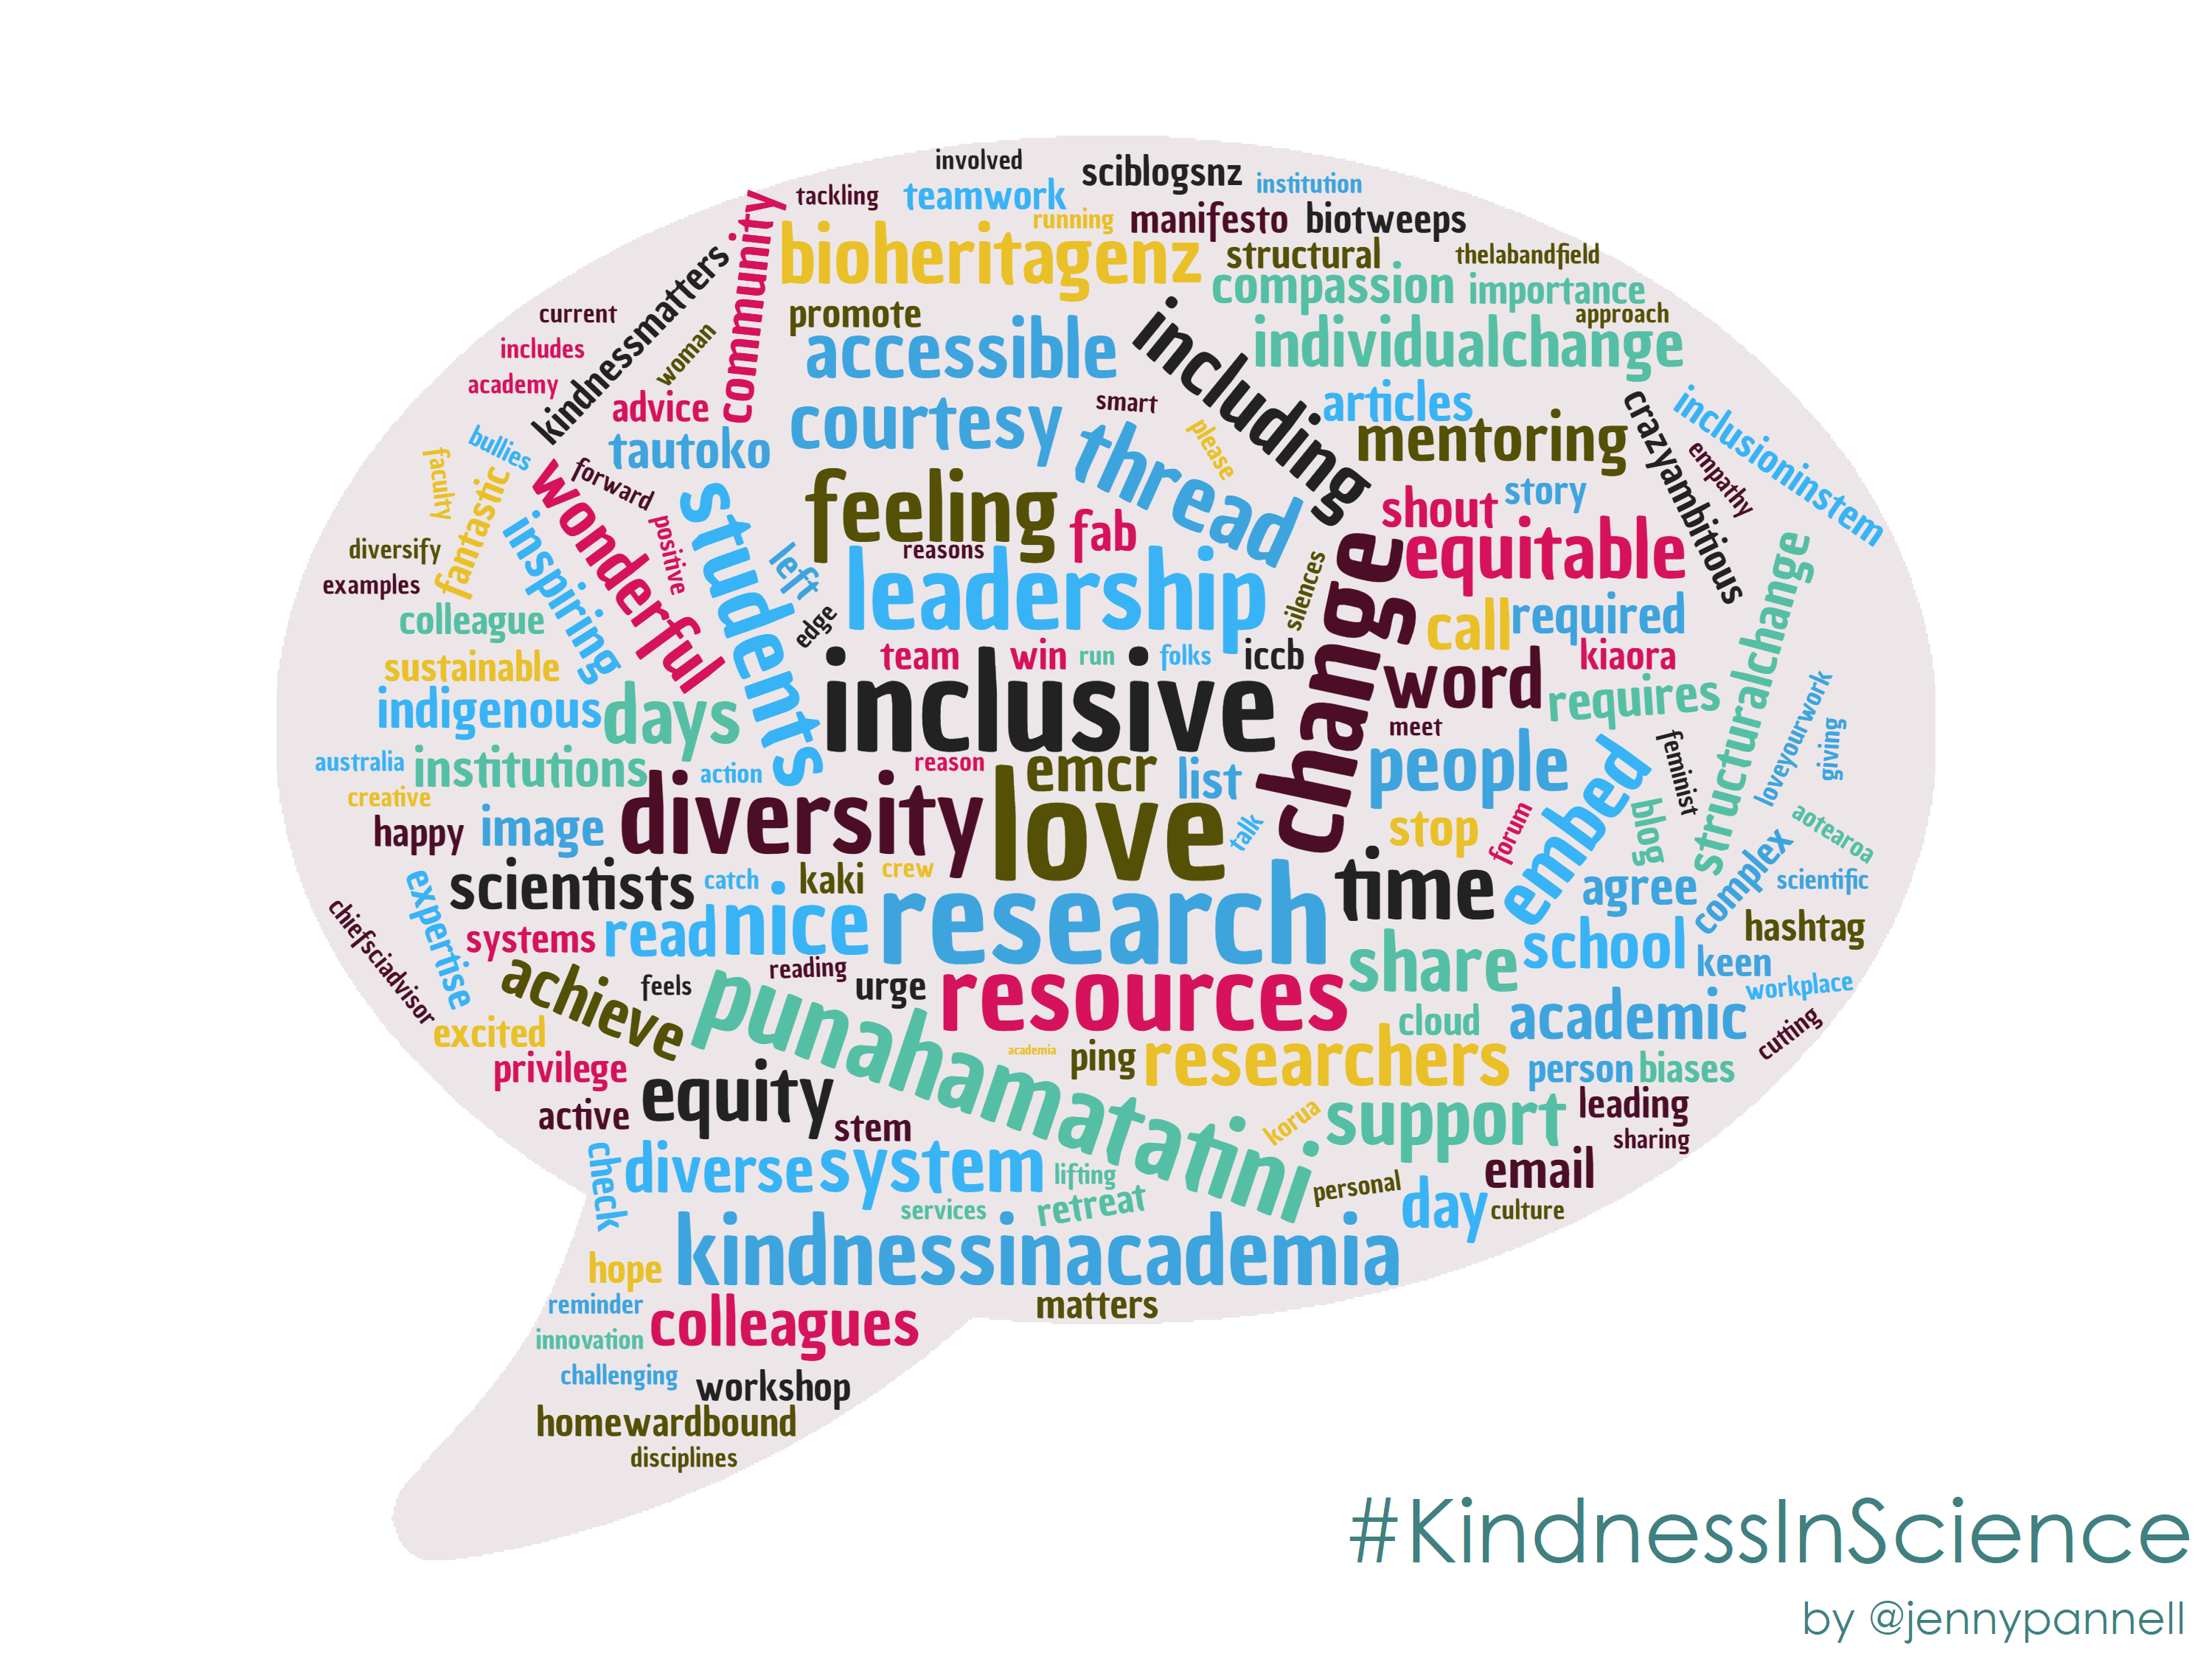 Featured image: What is Kindness in Science?